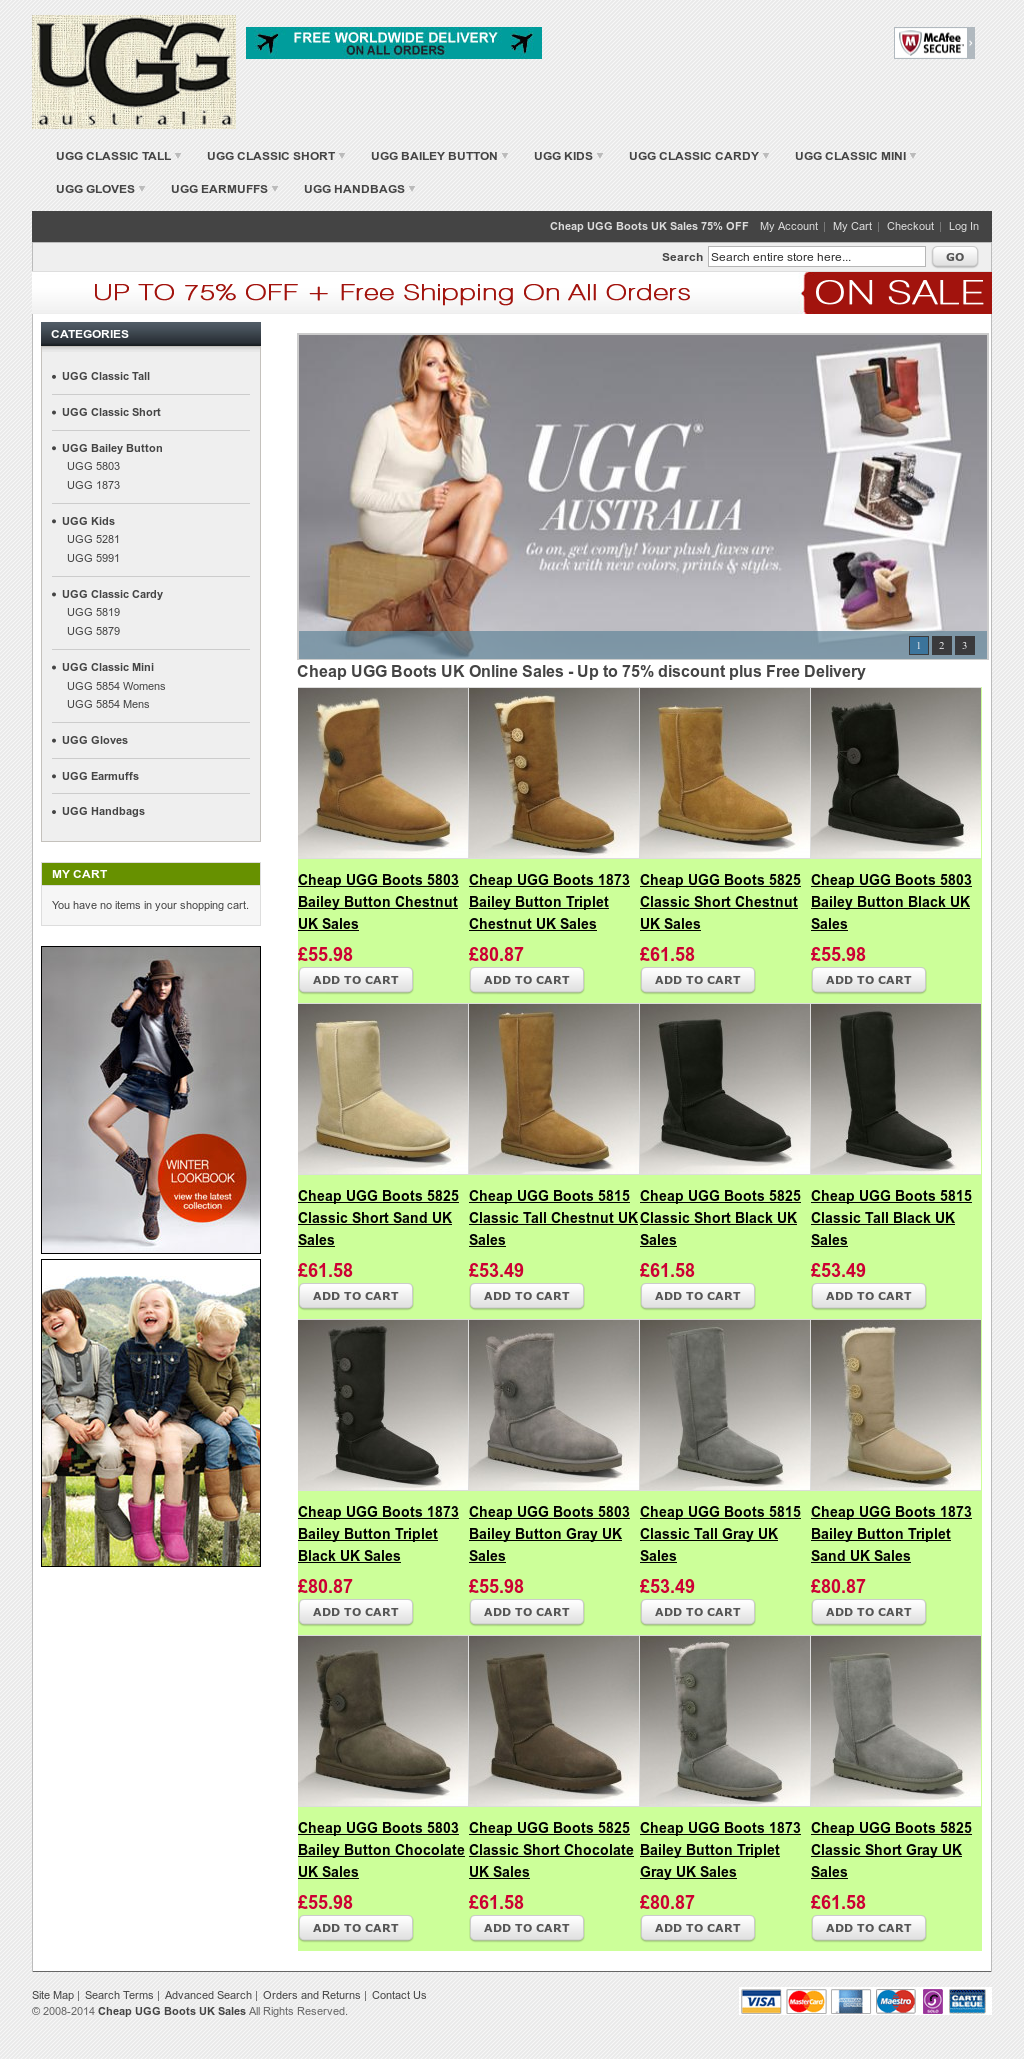 Cheap Ugg Boots Uk Sales's Competitors